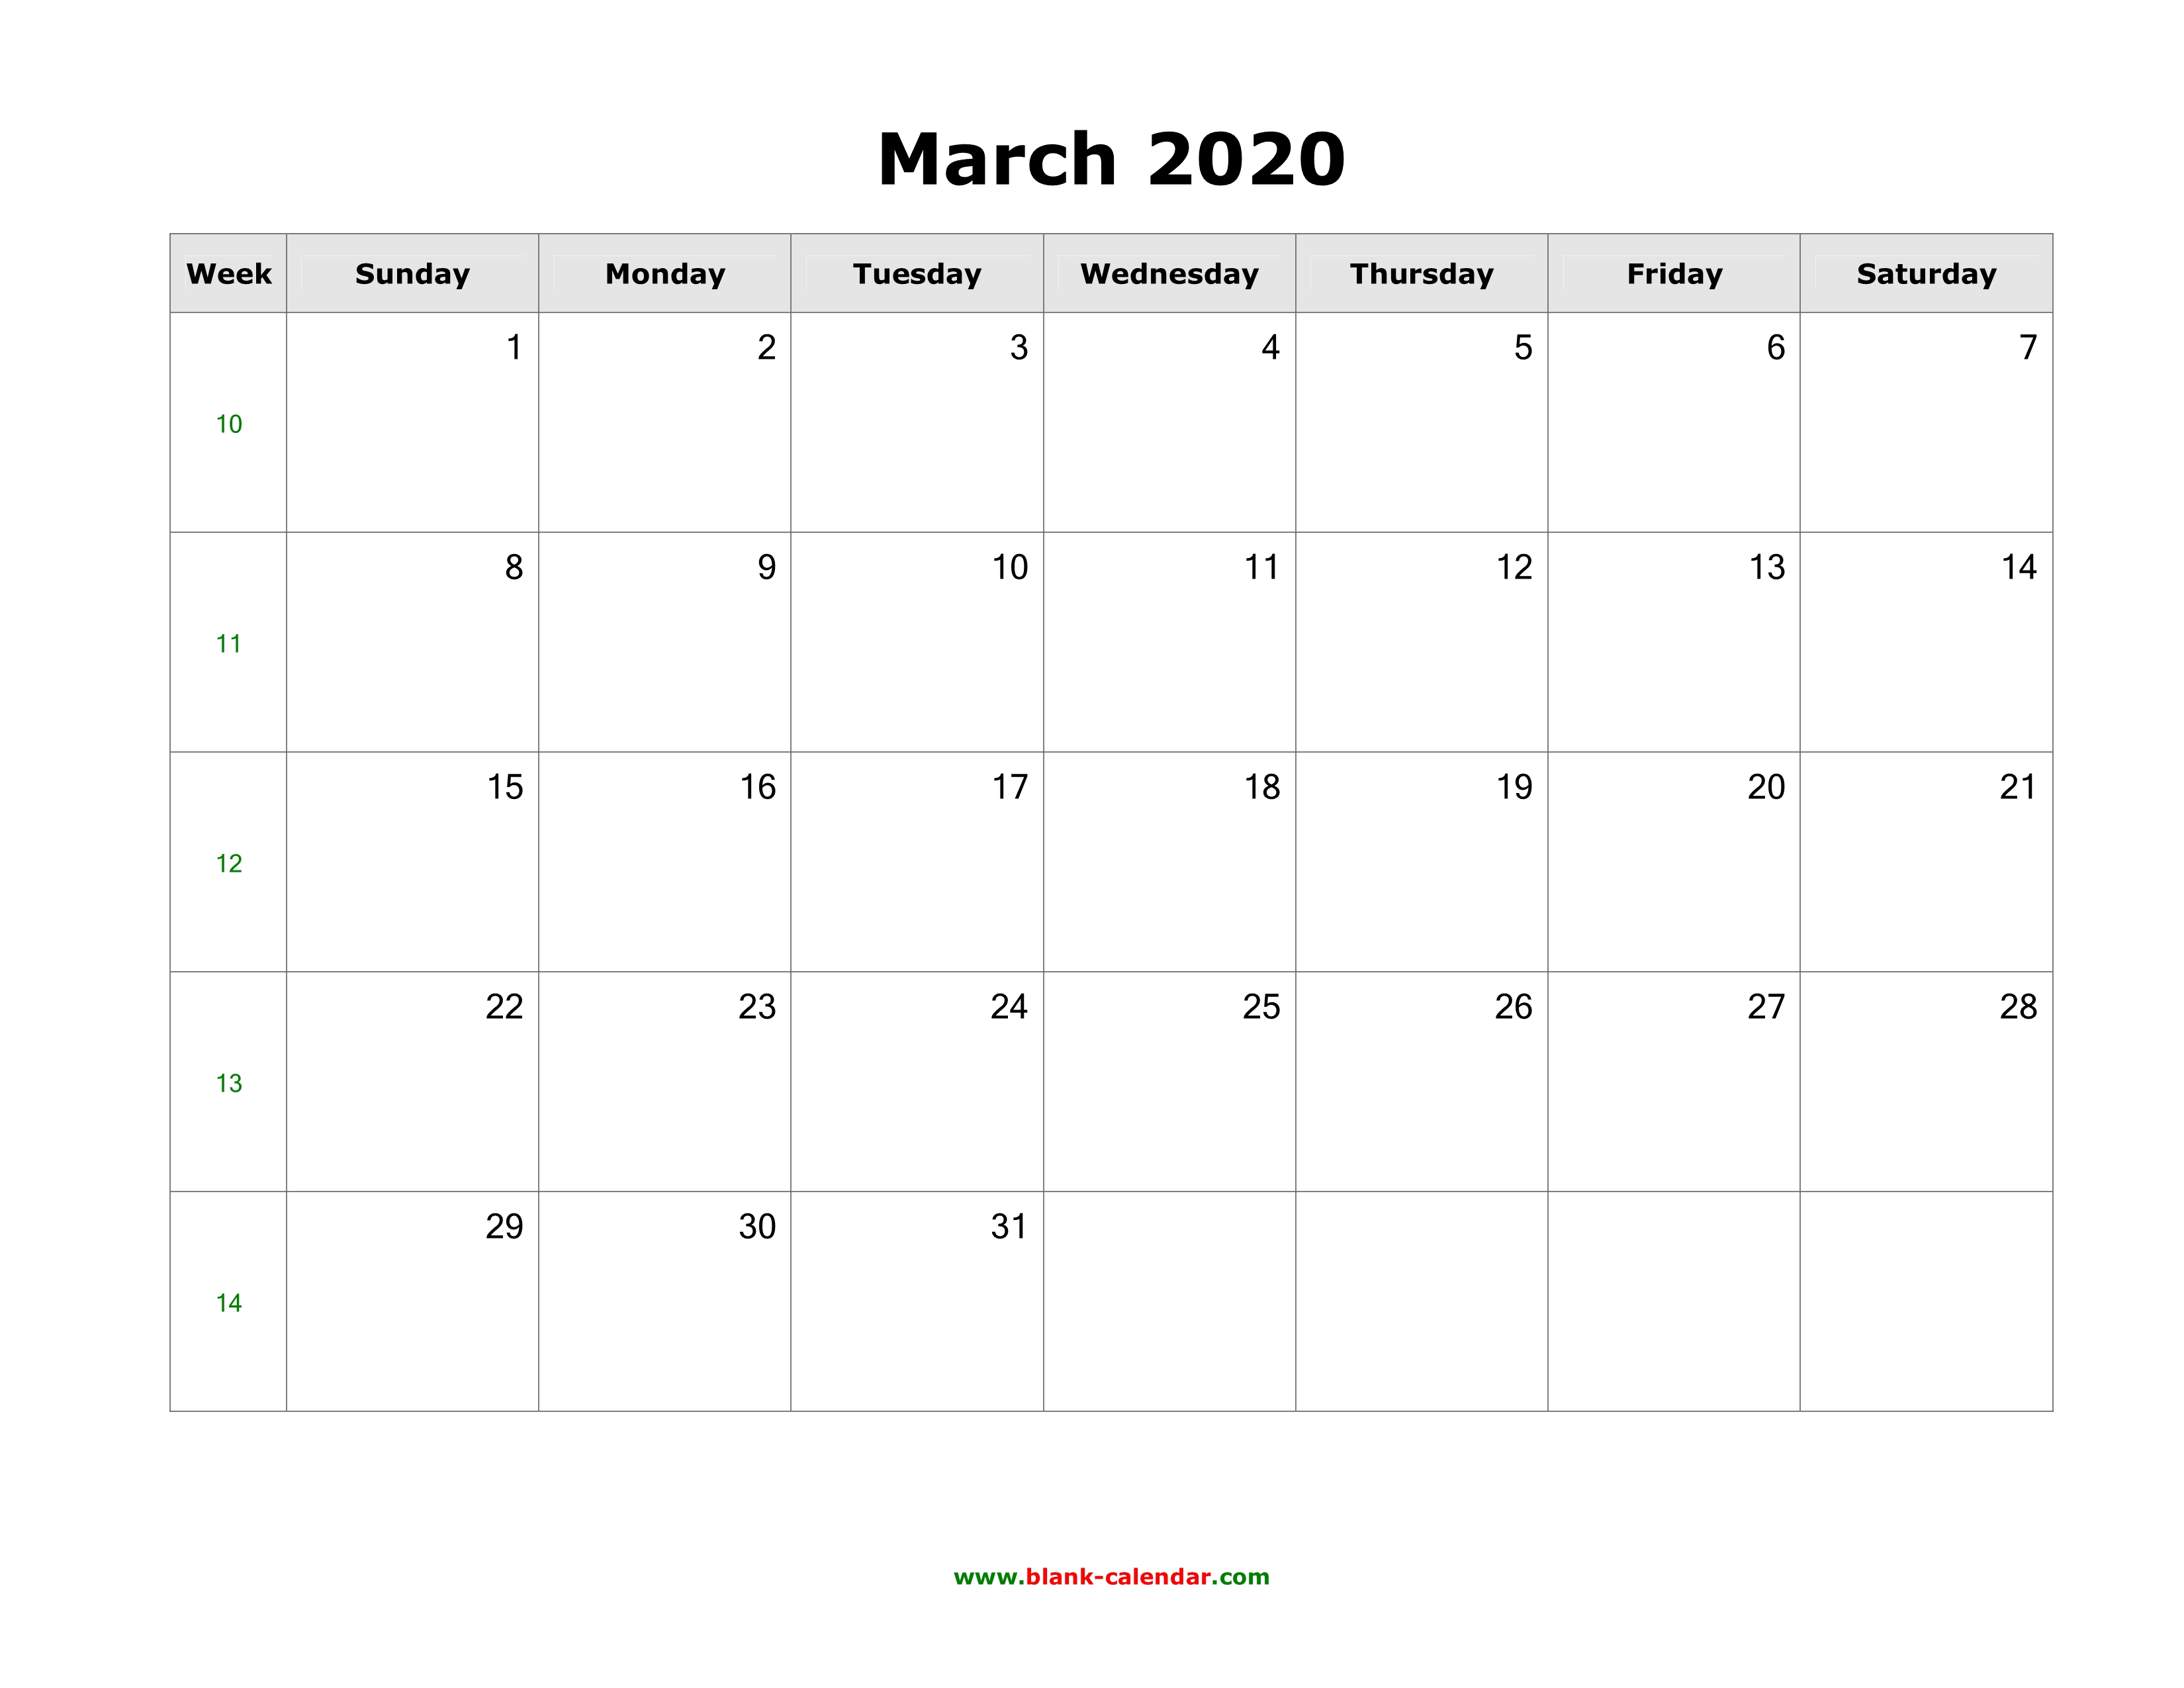 March 2020 Calendar With Holidays Download March 2020 Blank Calendar with US Holidays (horizontal)